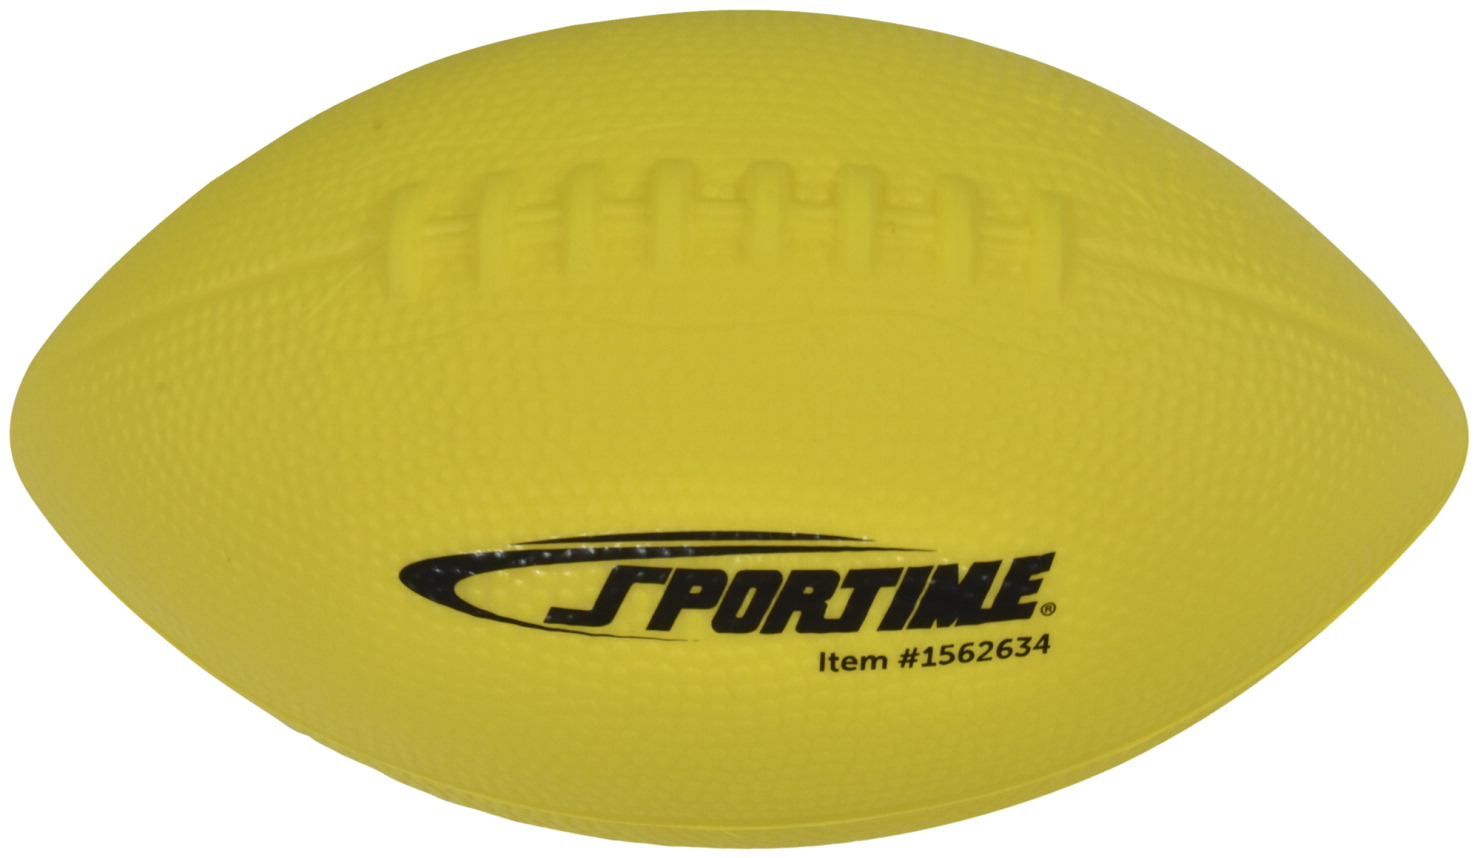 Sportime Coated Foam Junior Football, High-Visibility Yellow